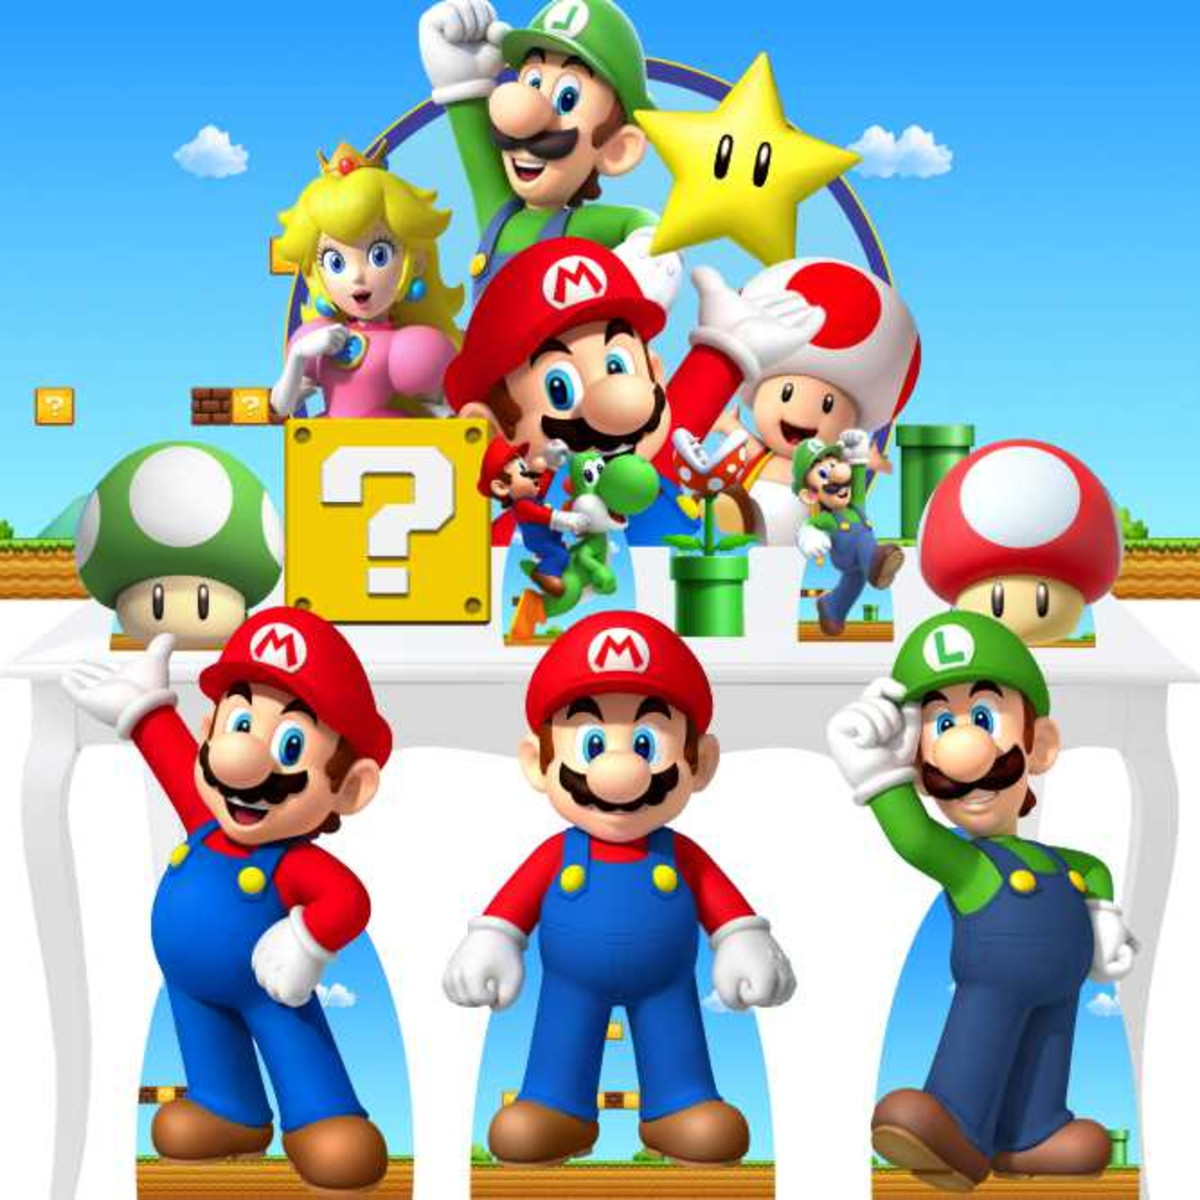 Combo Ouro Super Mario Bros Painel Totem Display Mdf 65cm